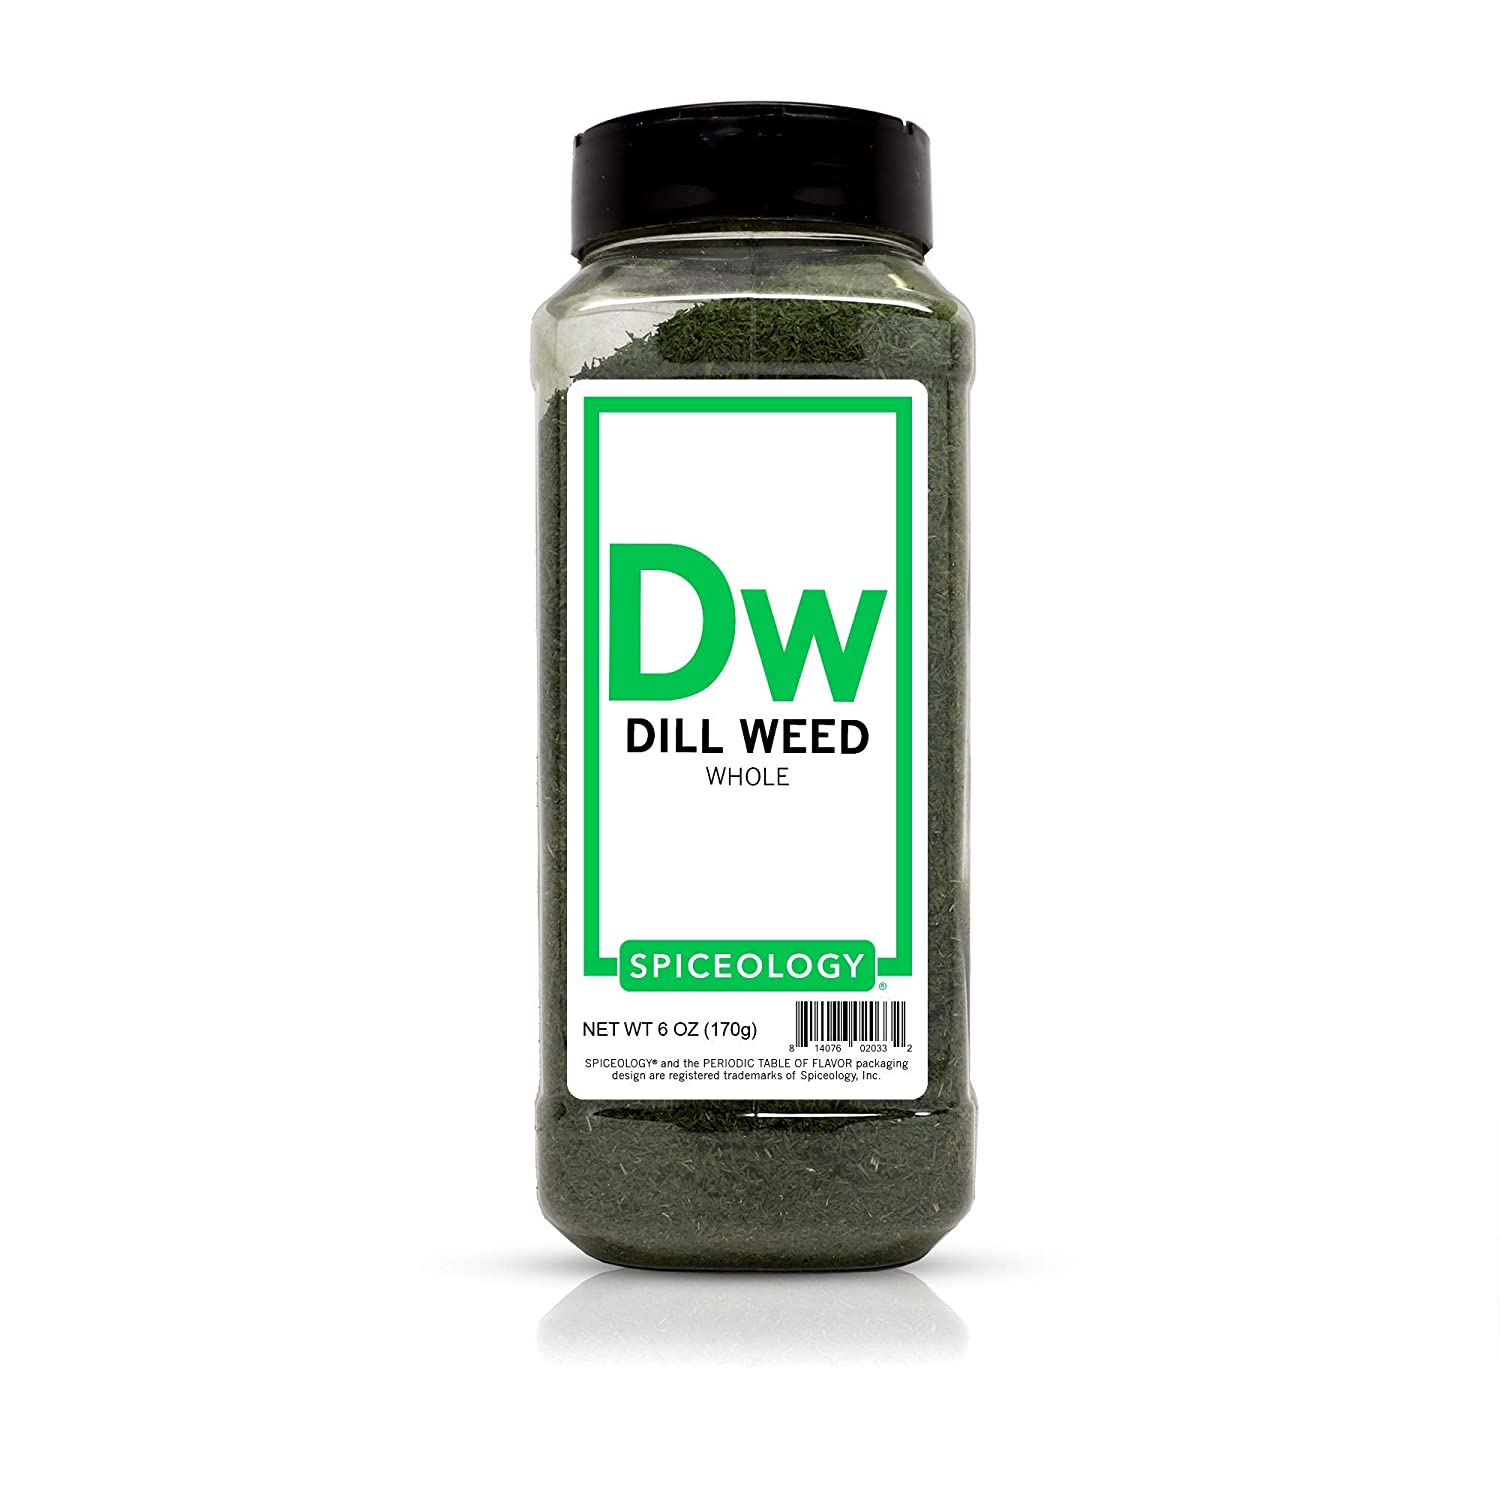 Dill Weed Herb - Spiceology ounces San Antonio Mall 6 Challenge the lowest price of Japan ☆ Dried